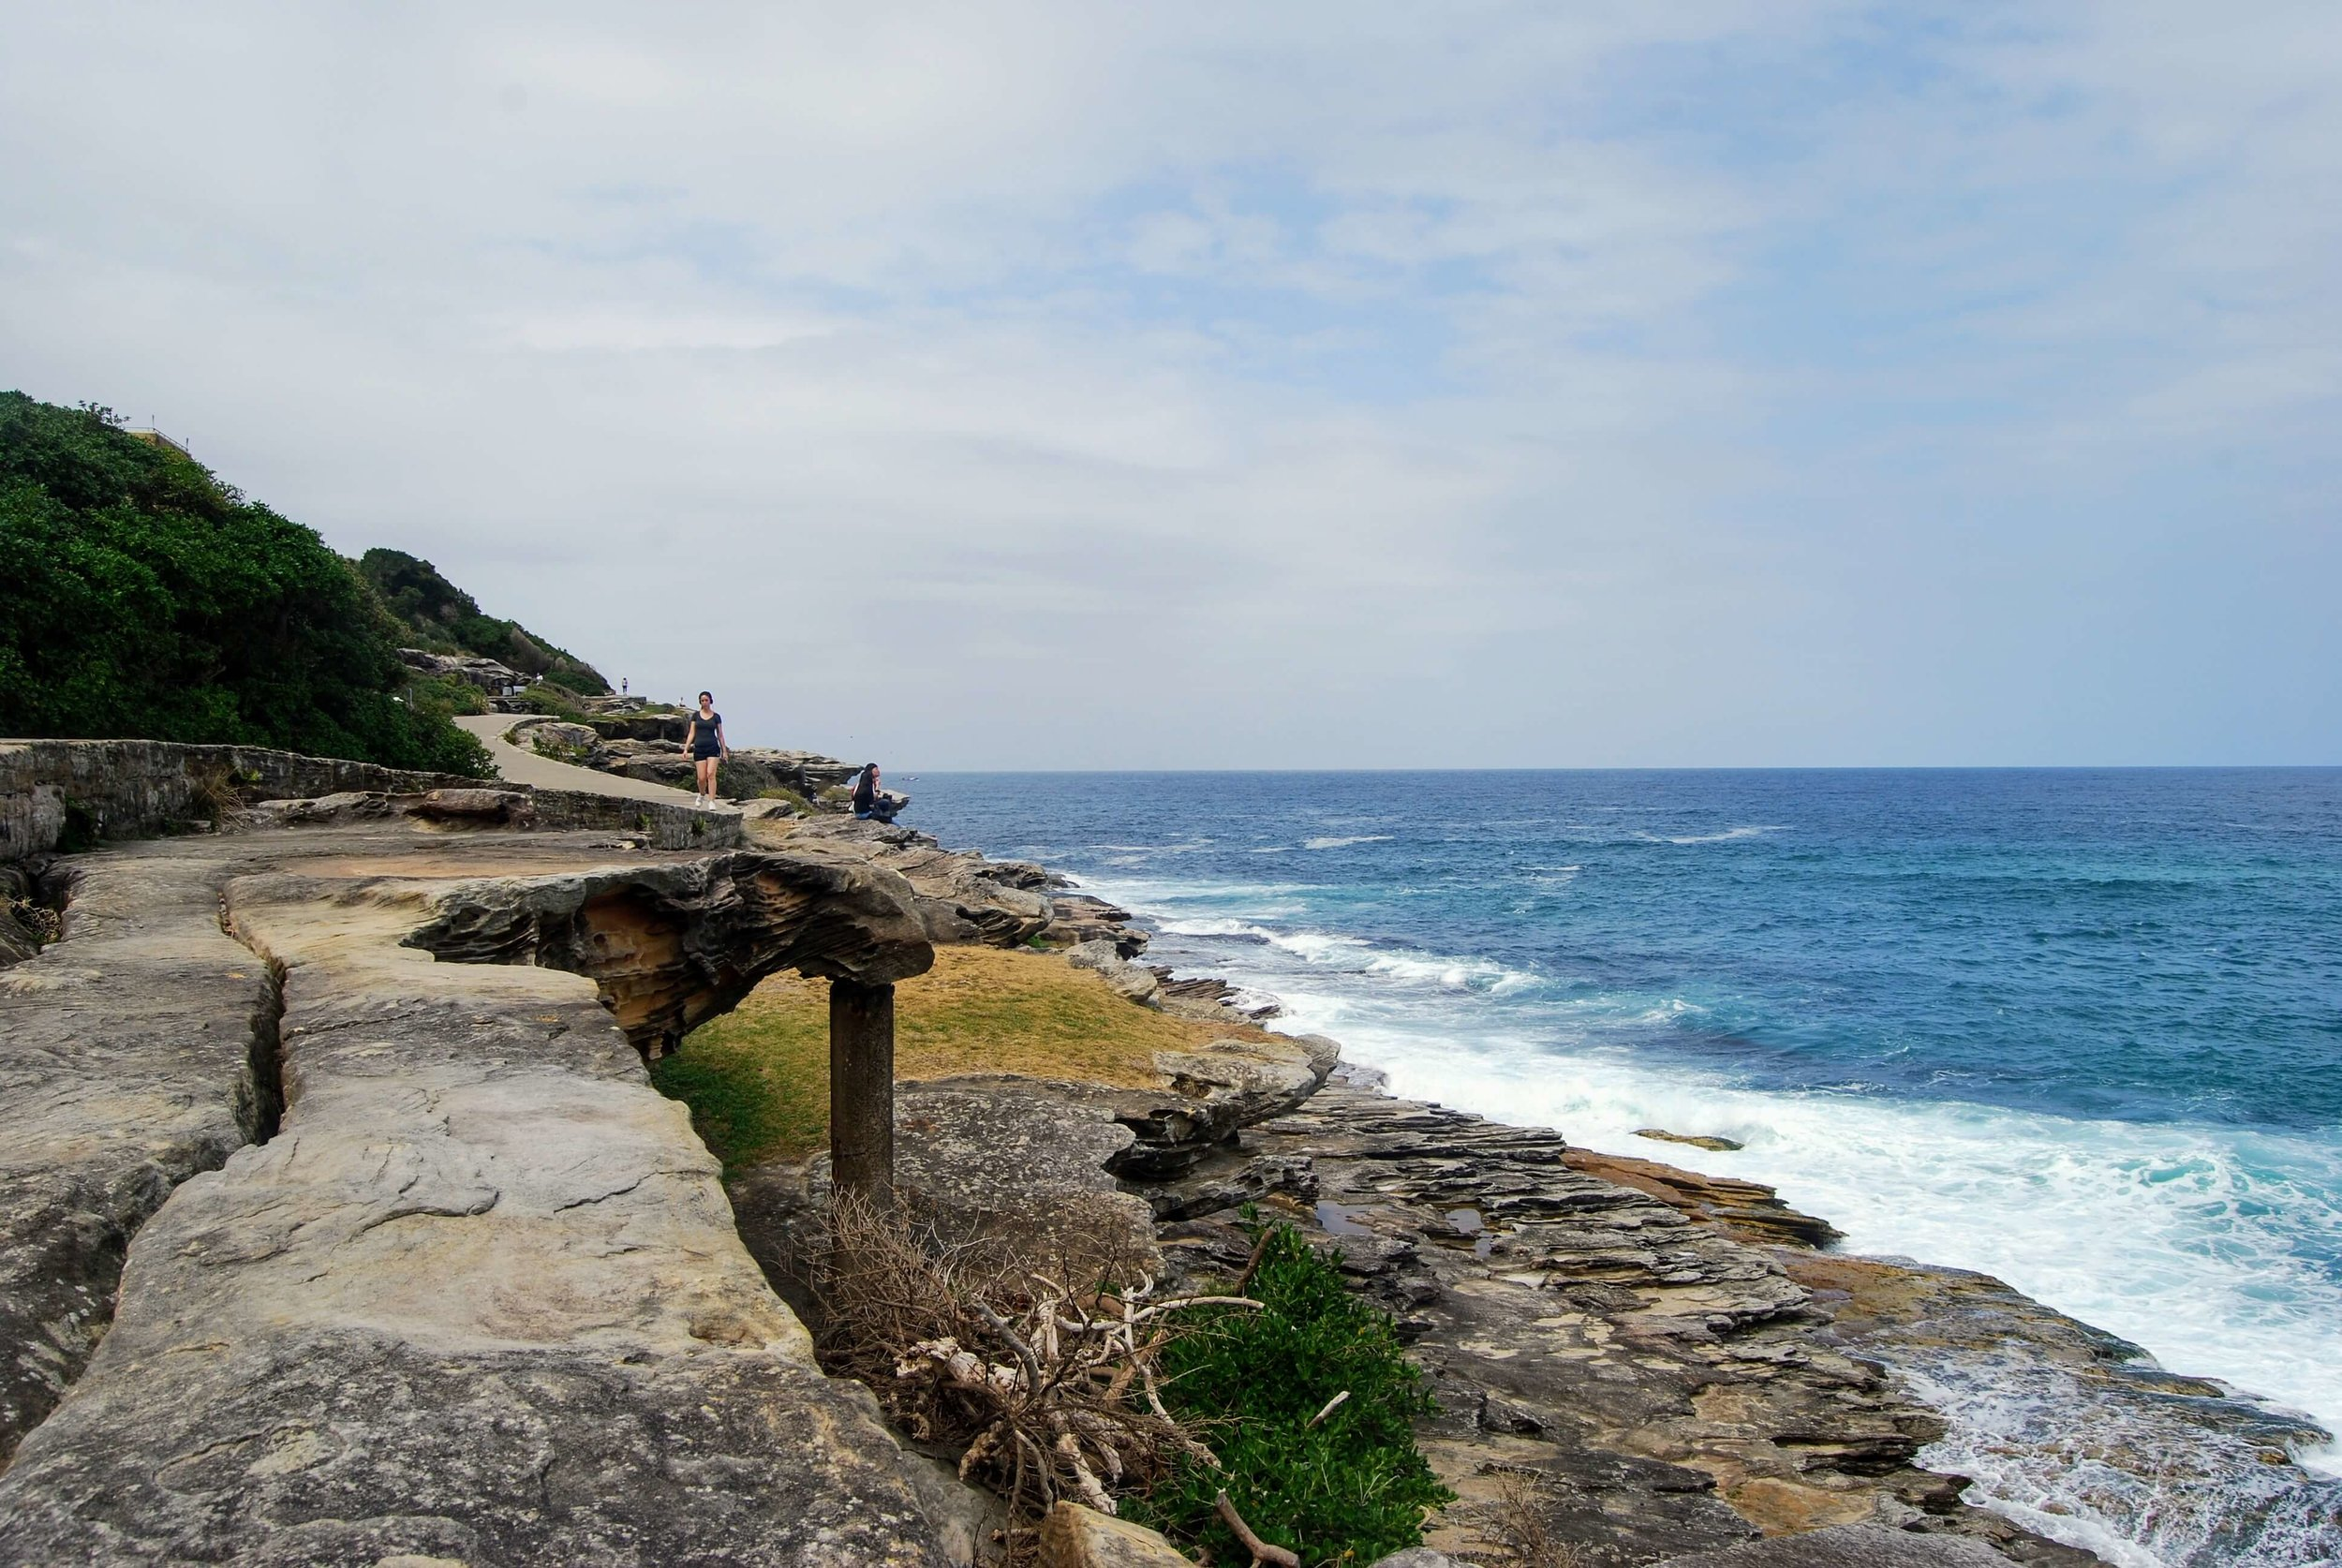 Part of the coastal walk between Tamarama and Bondi is literally perched over the shore.